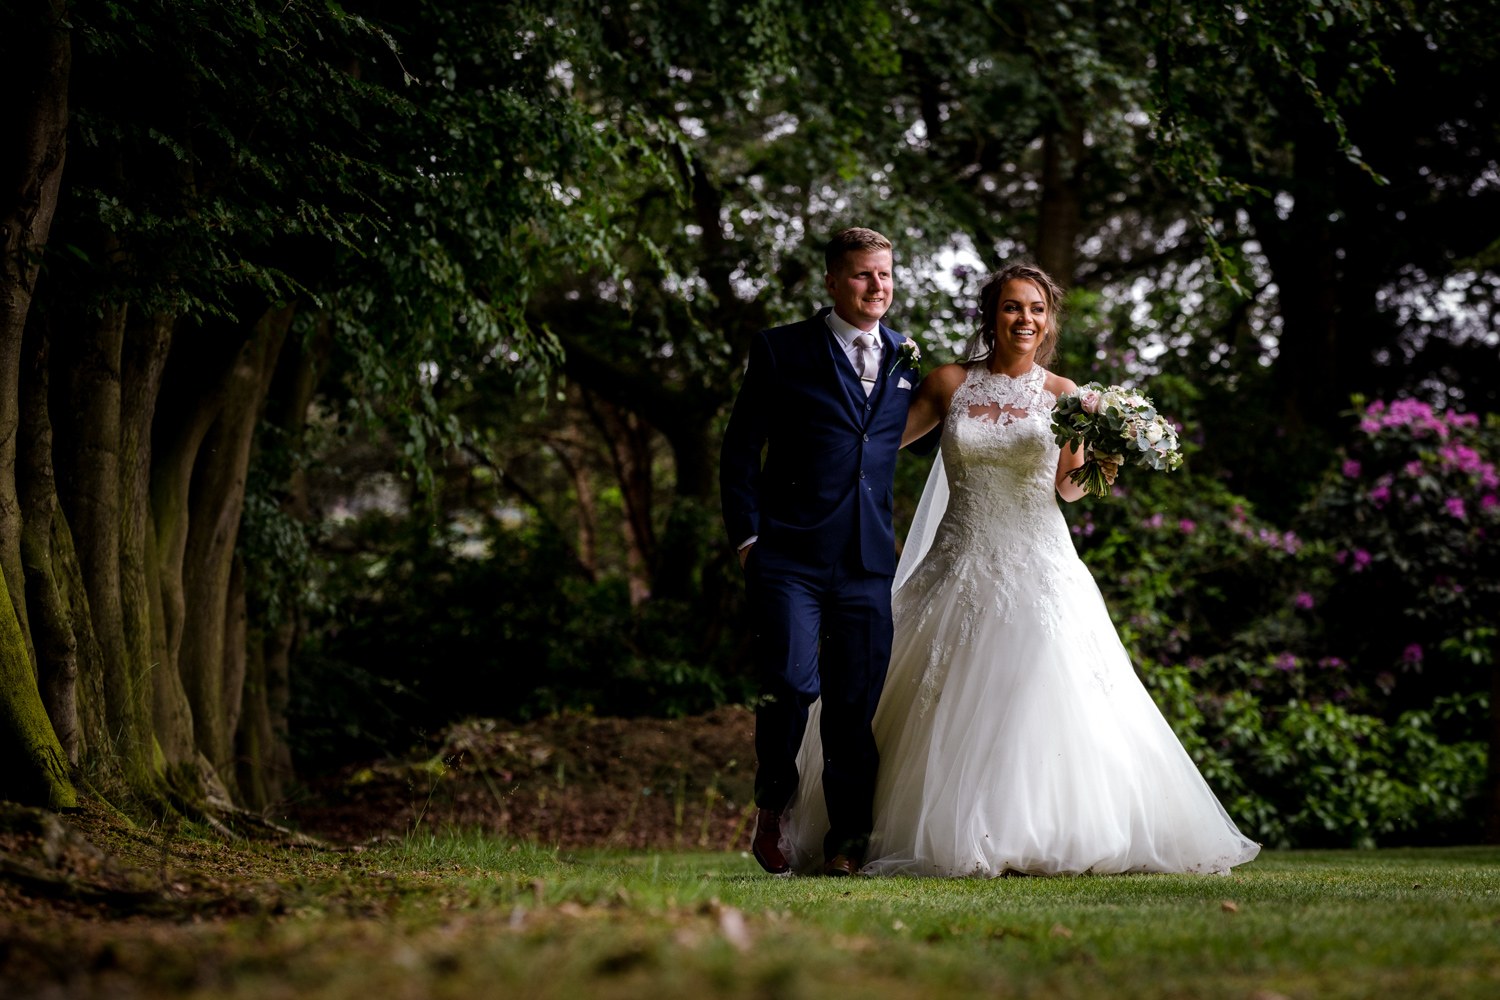 Bride and groom go for a stroll during their Nunsmere Hall Wedding Reception